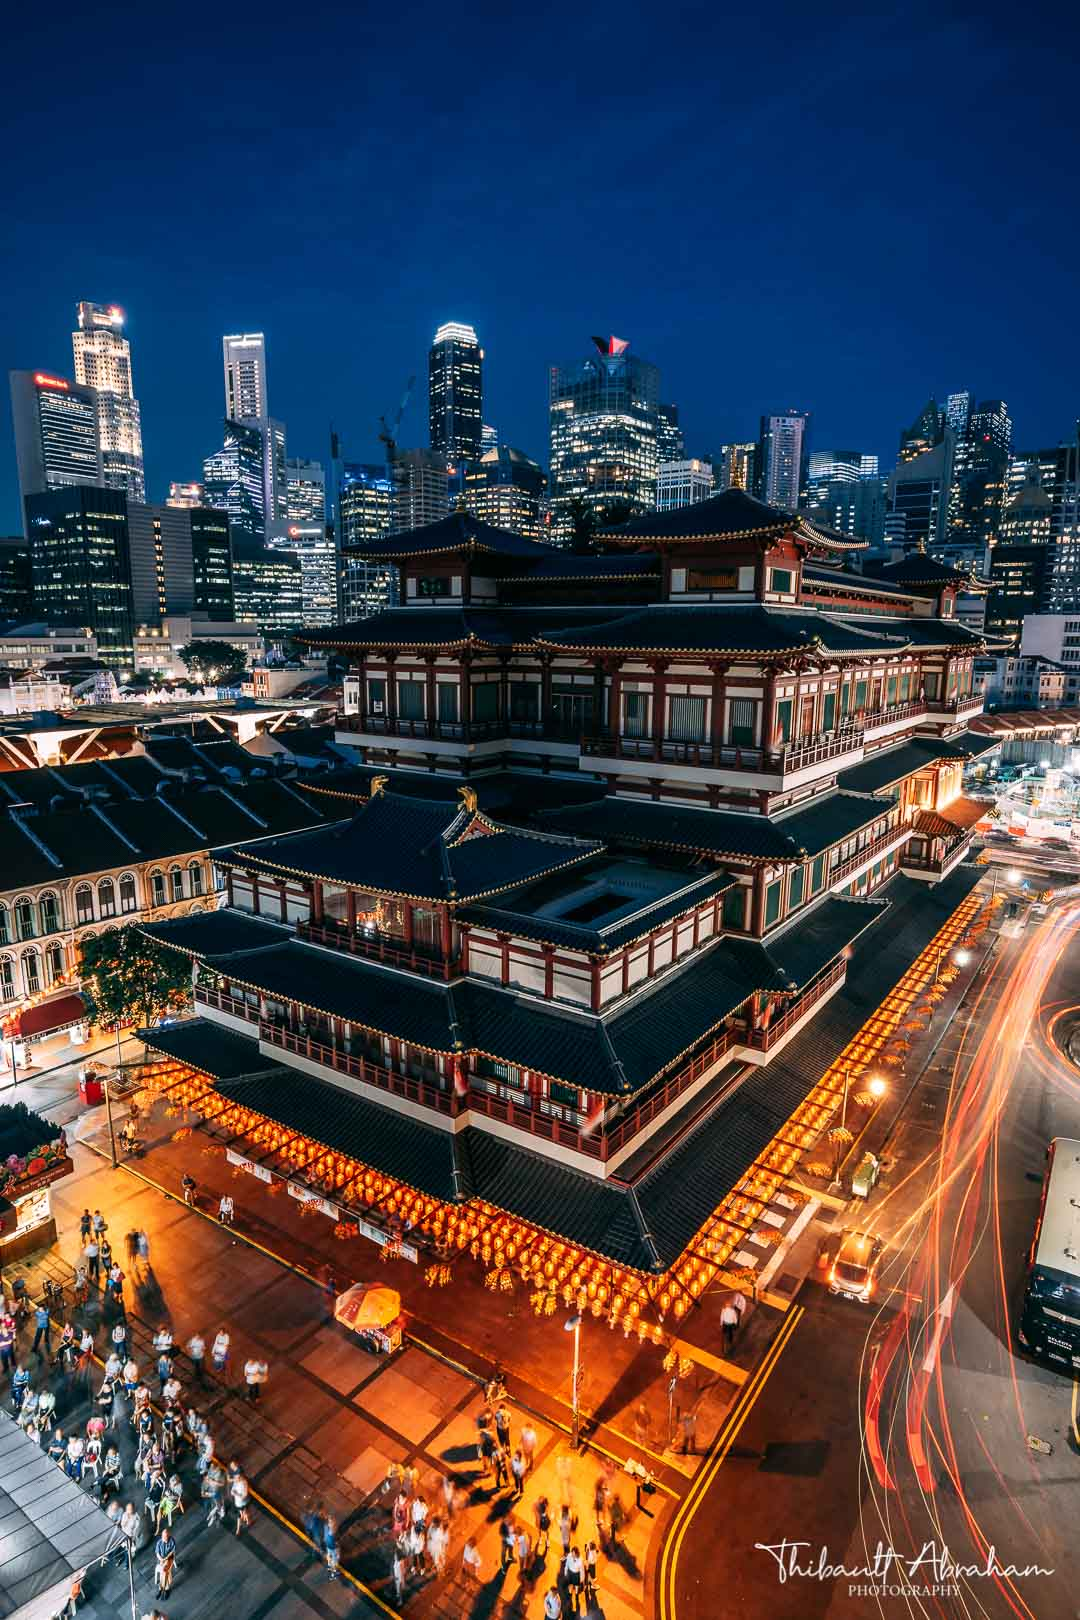 Photograph of the Buddha Tooth Relic Temple at night in Singapore